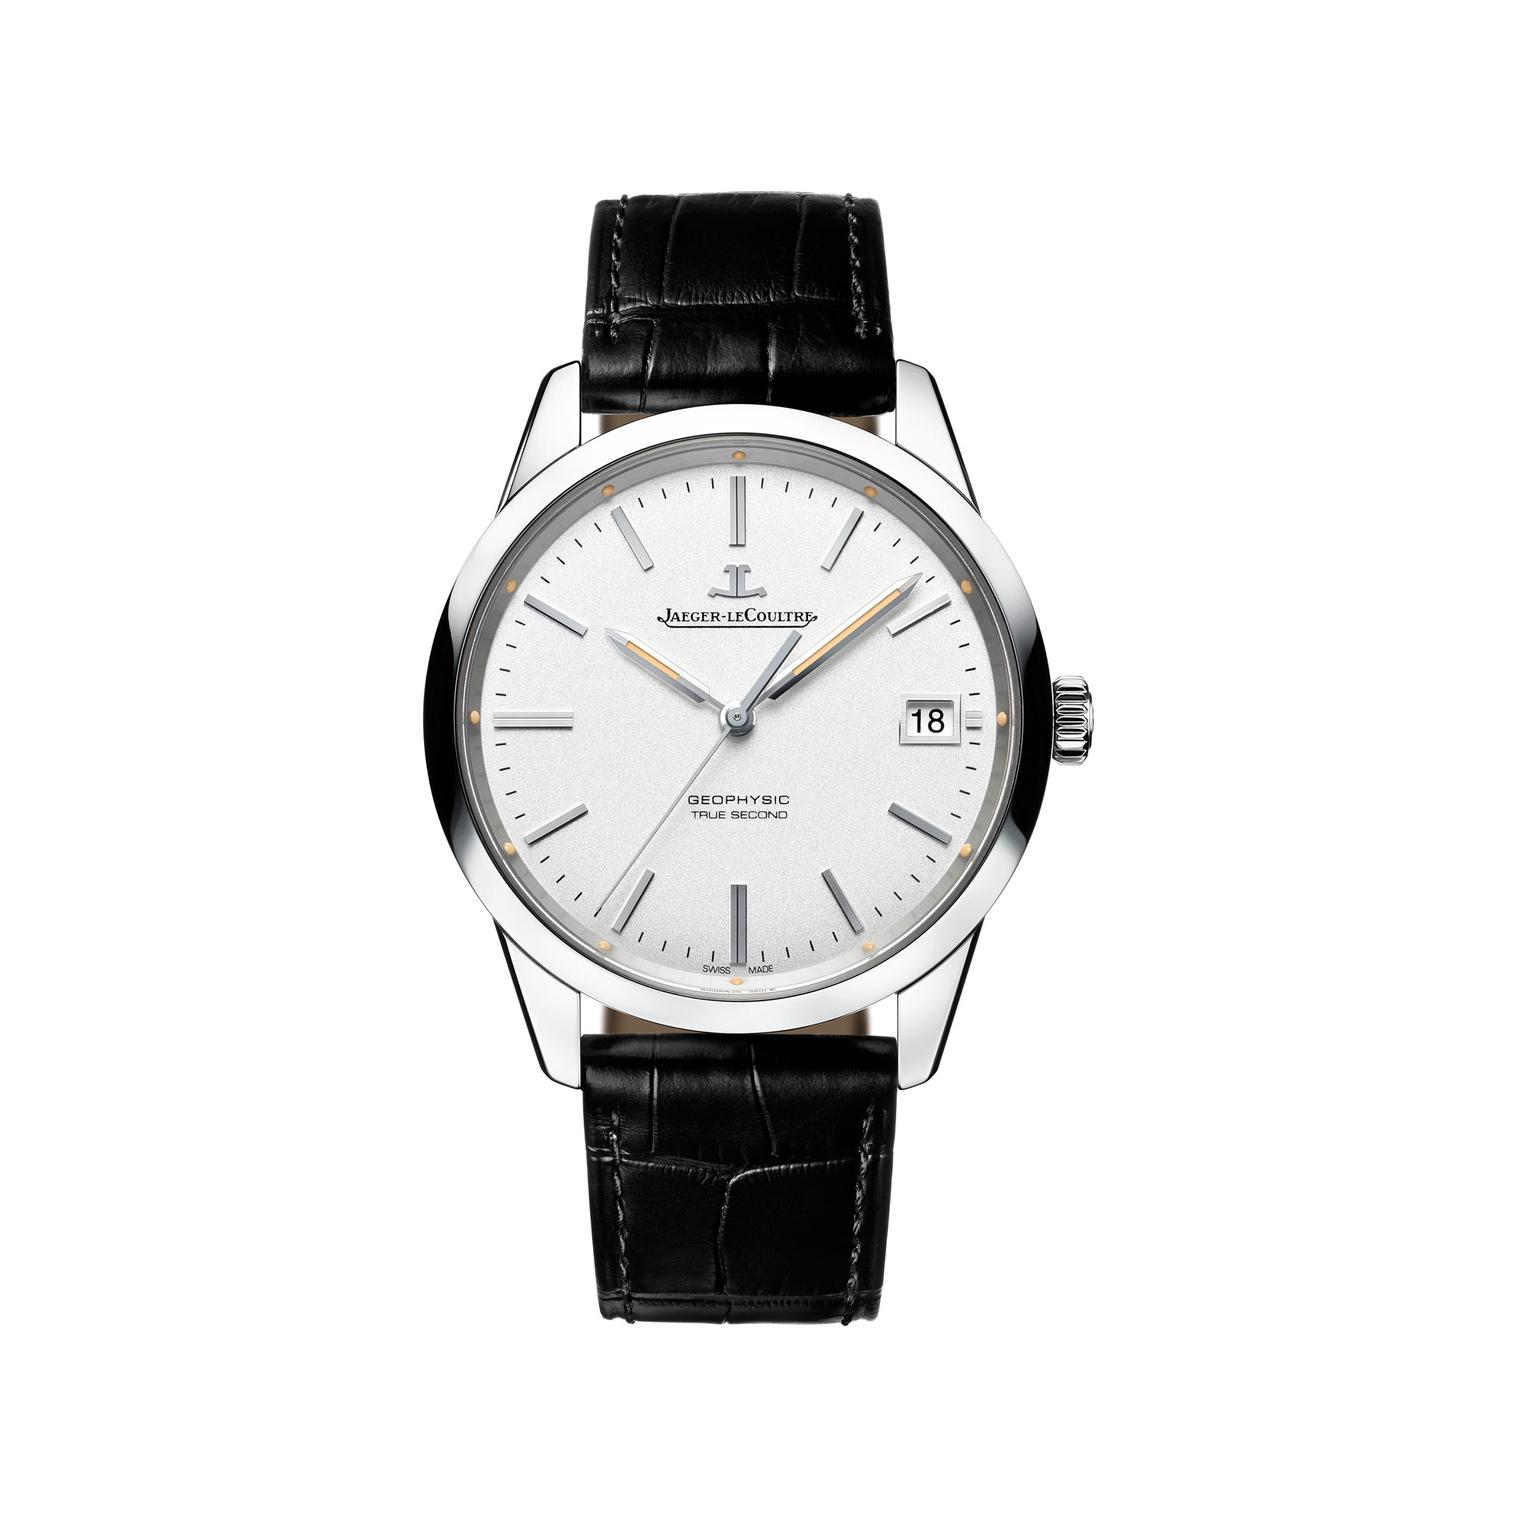 Jaeger-LeCoultre Geophysic True Second watch ss